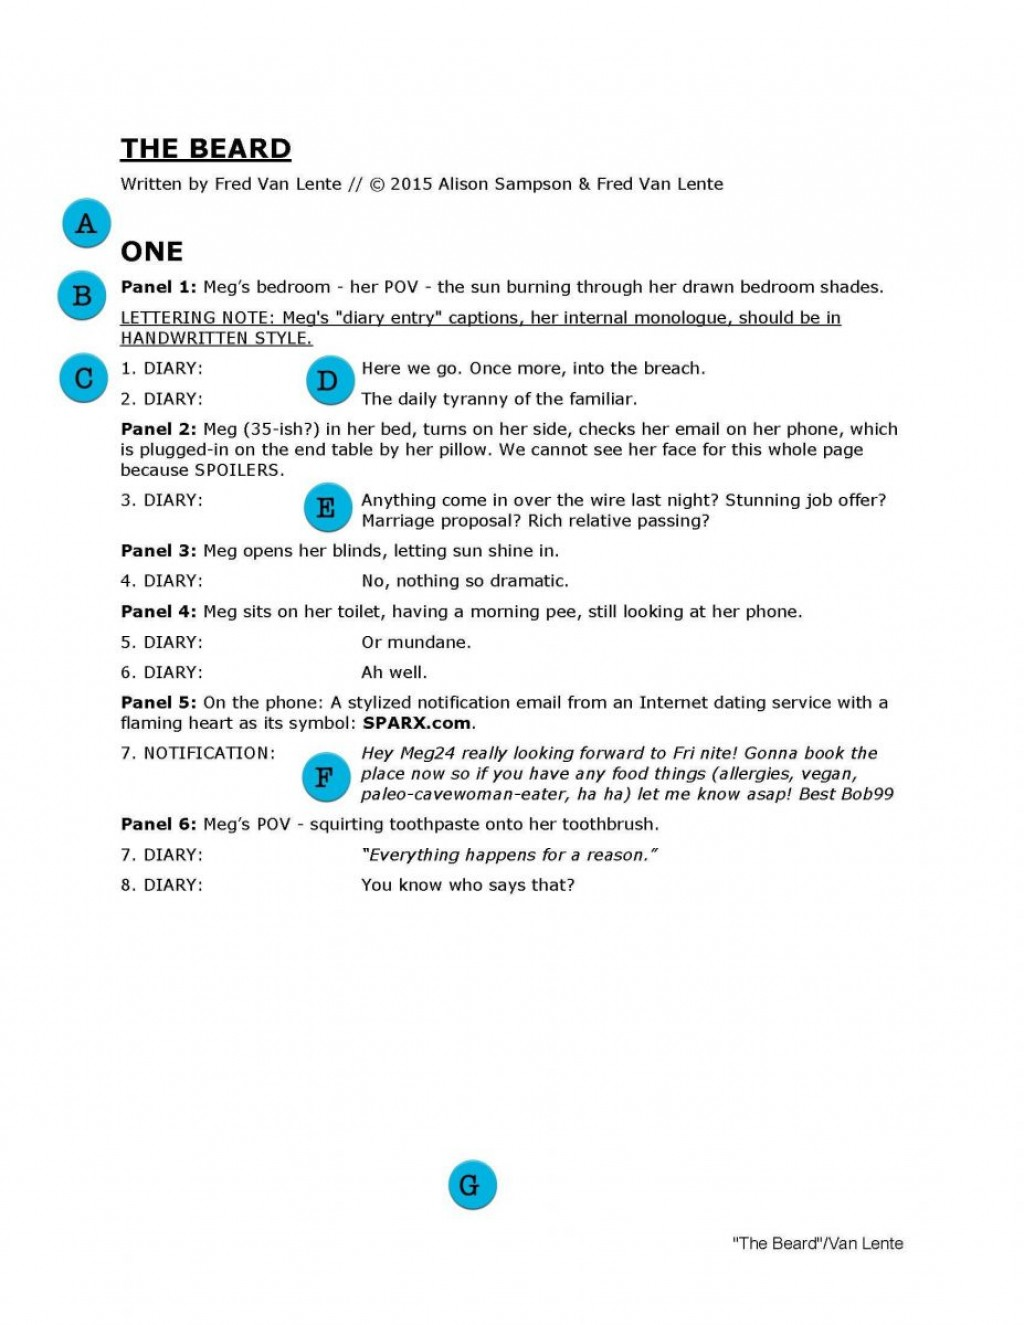 007 Remarkable Comic Book Script Writing Format Image  ExampleLarge